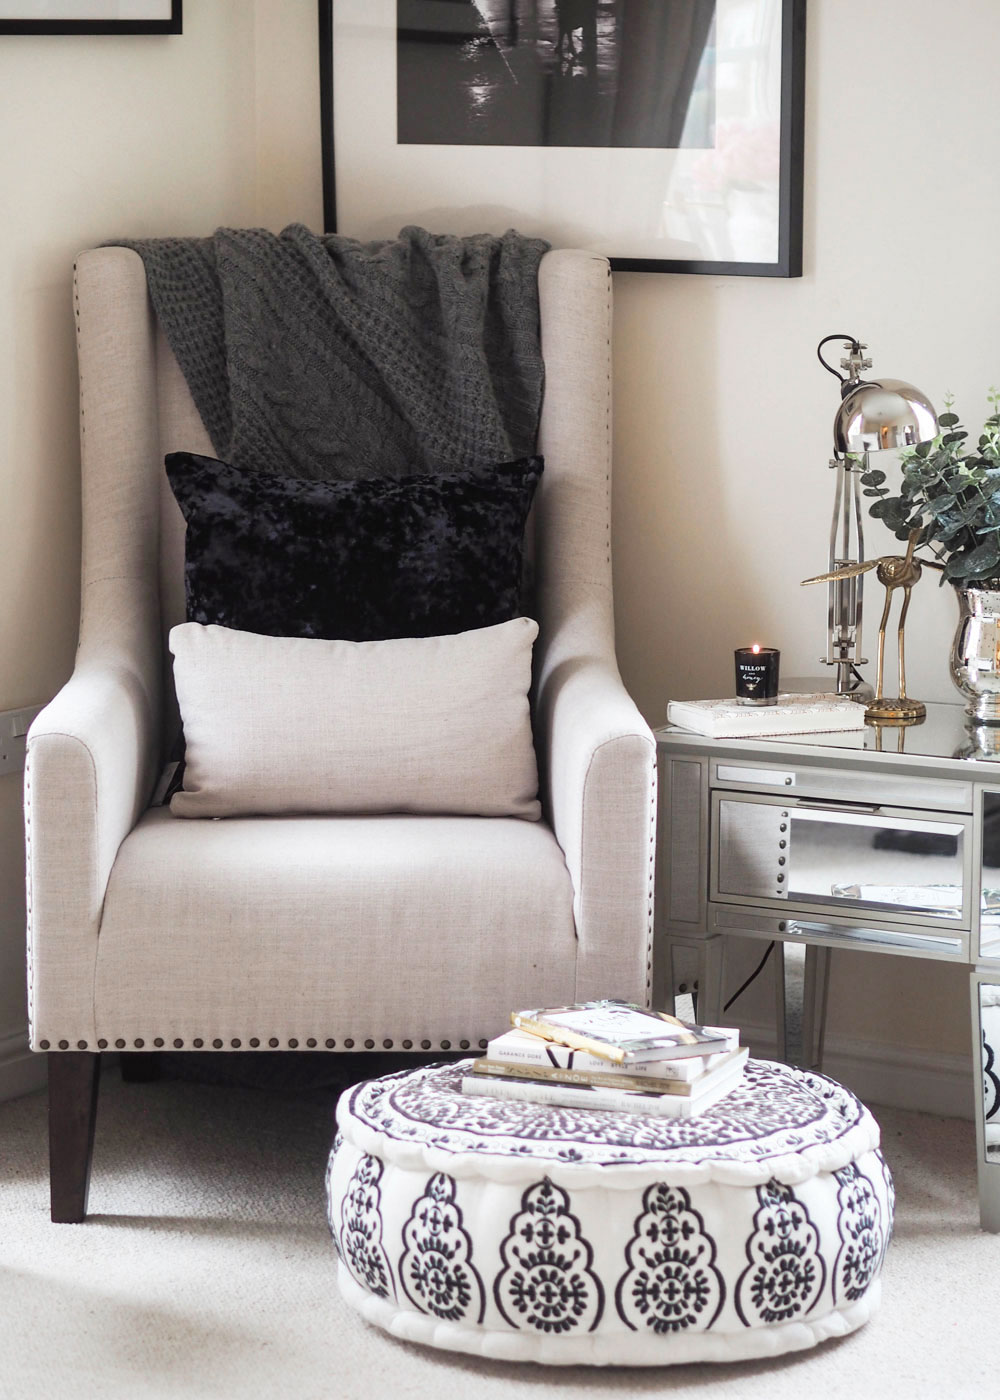 Three elements you need to style a reading nook this autumn, where you can curl up with a good book and steaming mug of hot chocolate.